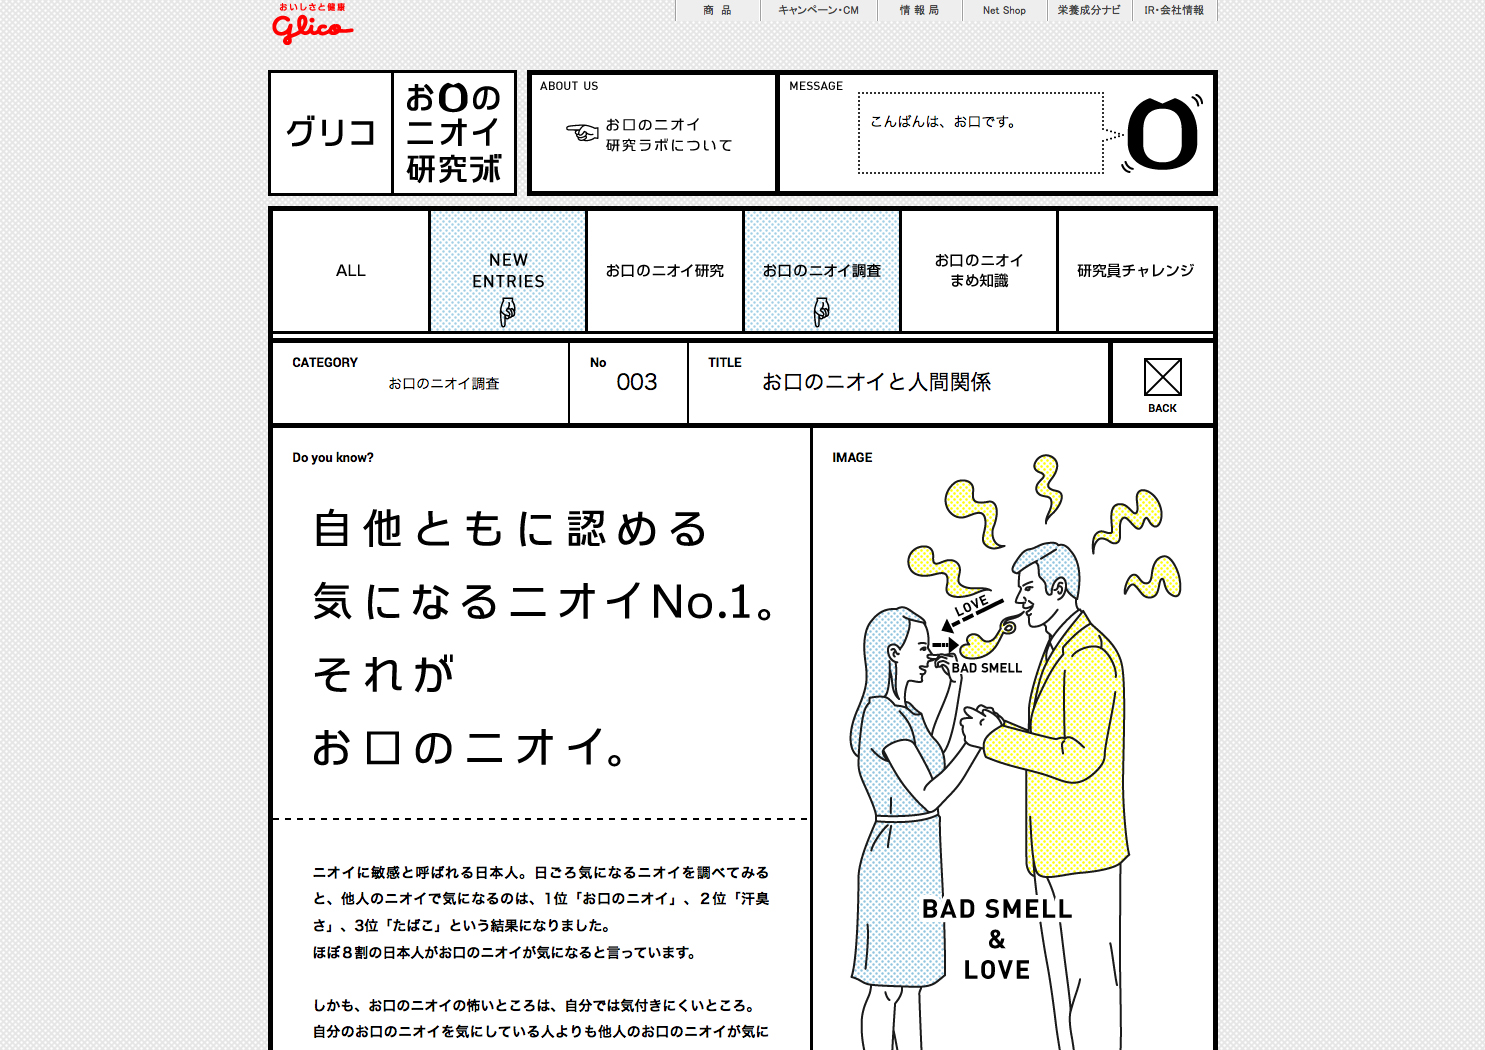 Glico okuchi no nioi kenkyu lab Website 2013